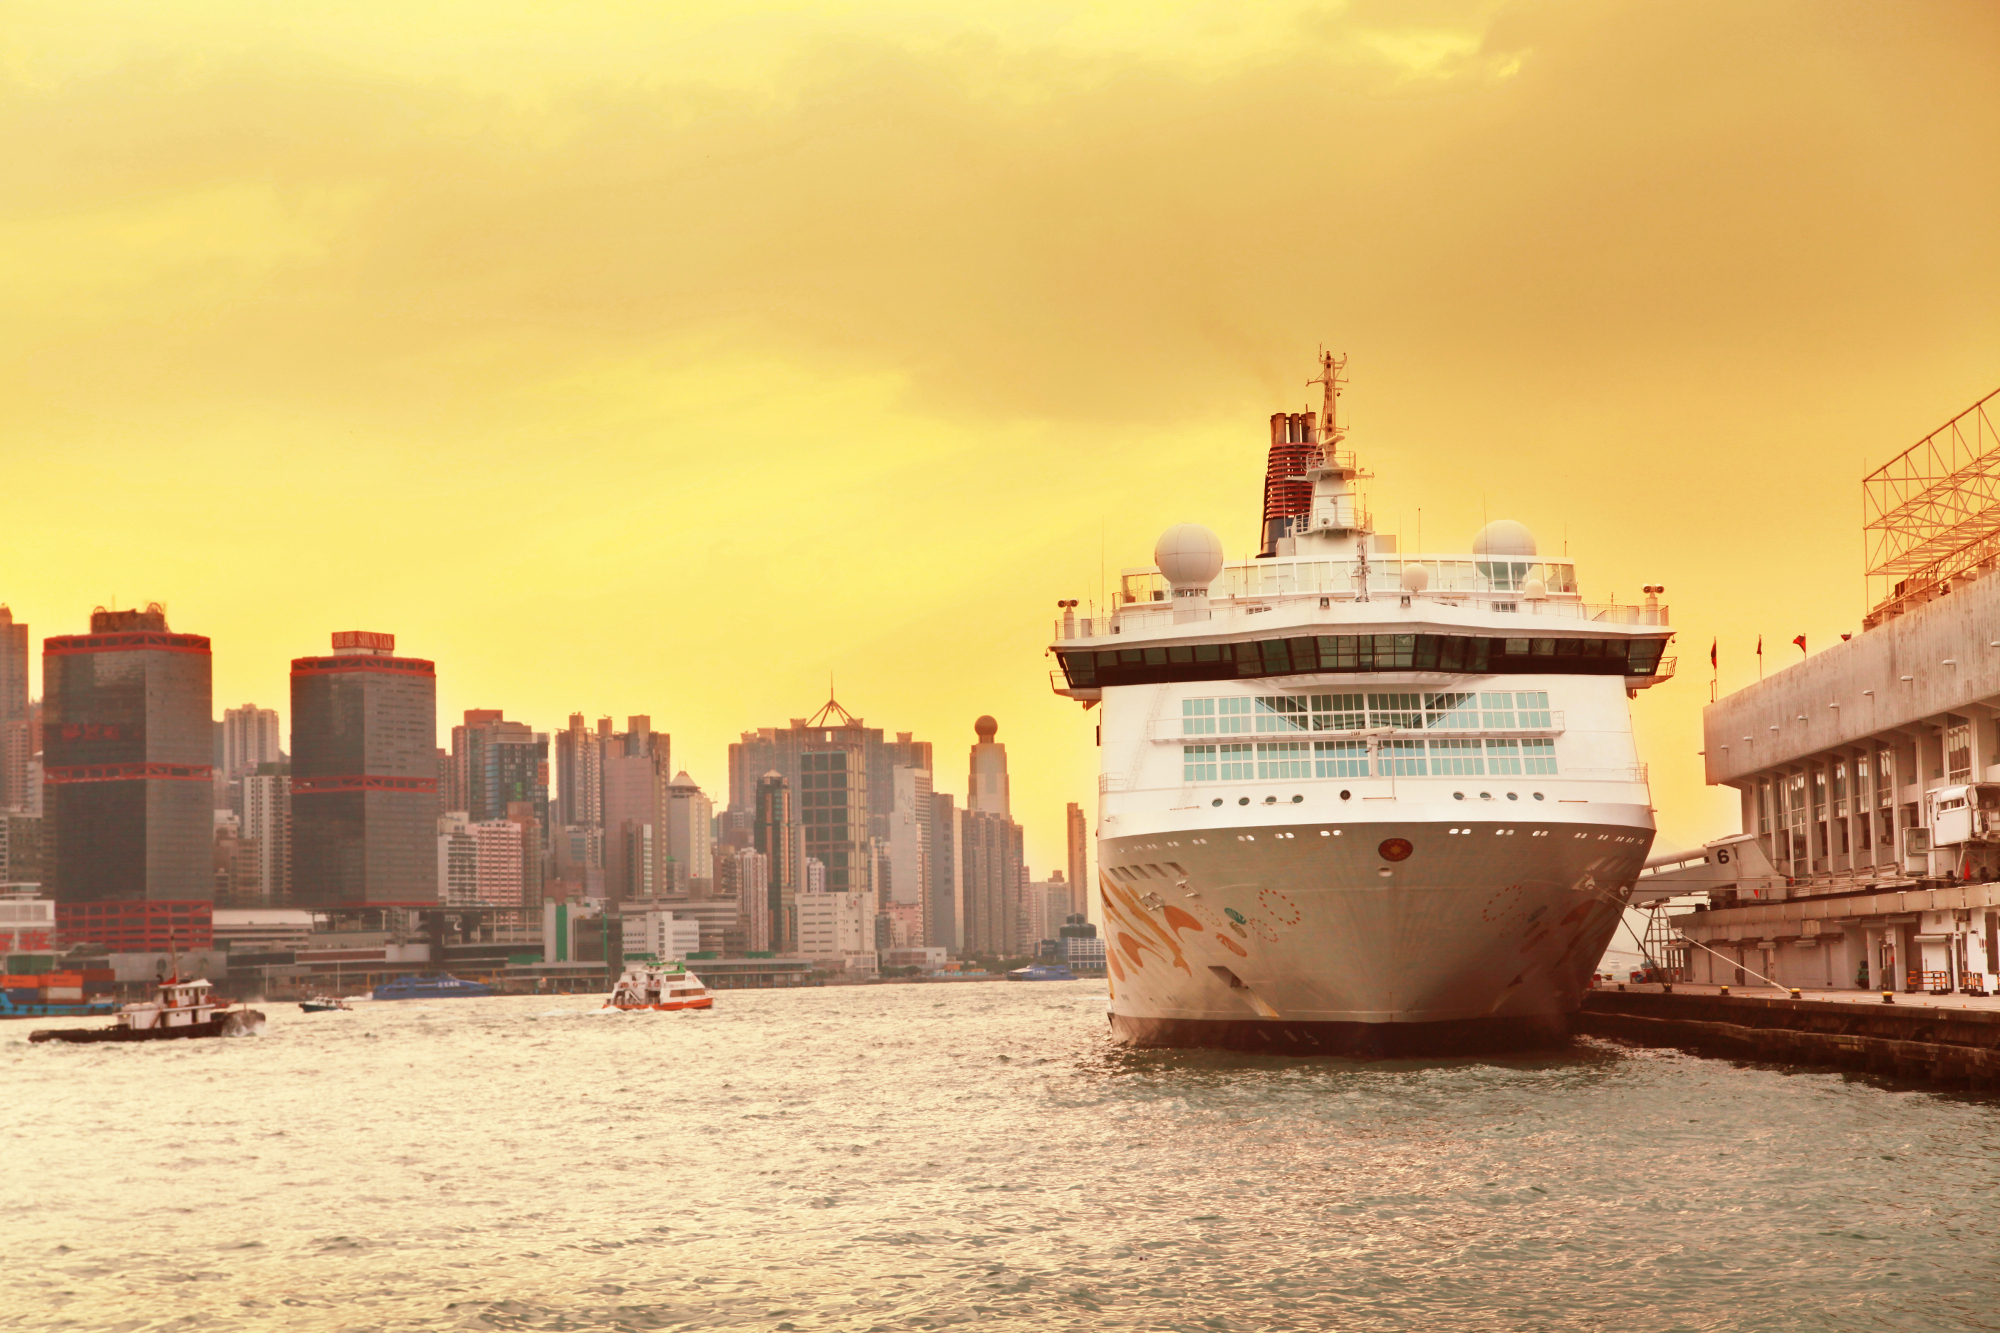 star-cruises-schiff-hong-kong